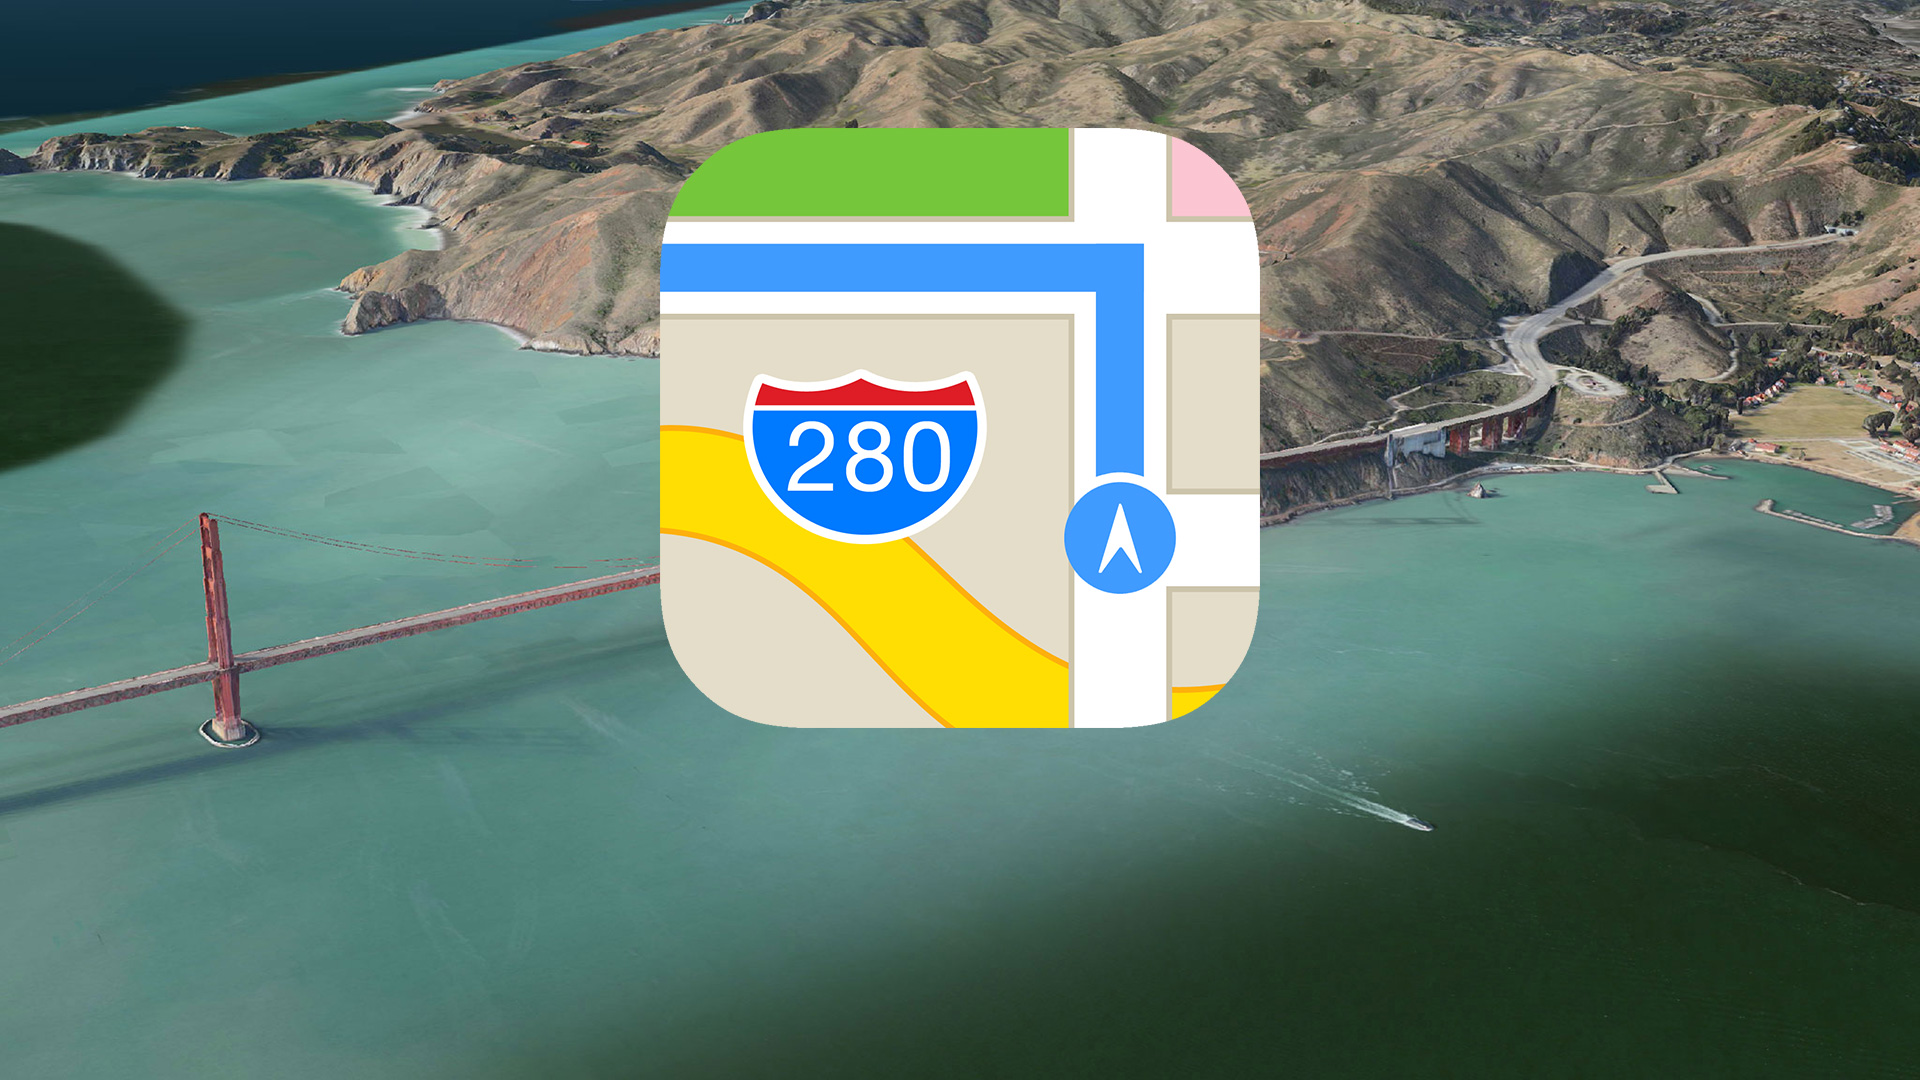 Apple rebuilding Maps from the ground up with Street View like     Apple Maps icon and aerial landscape shot